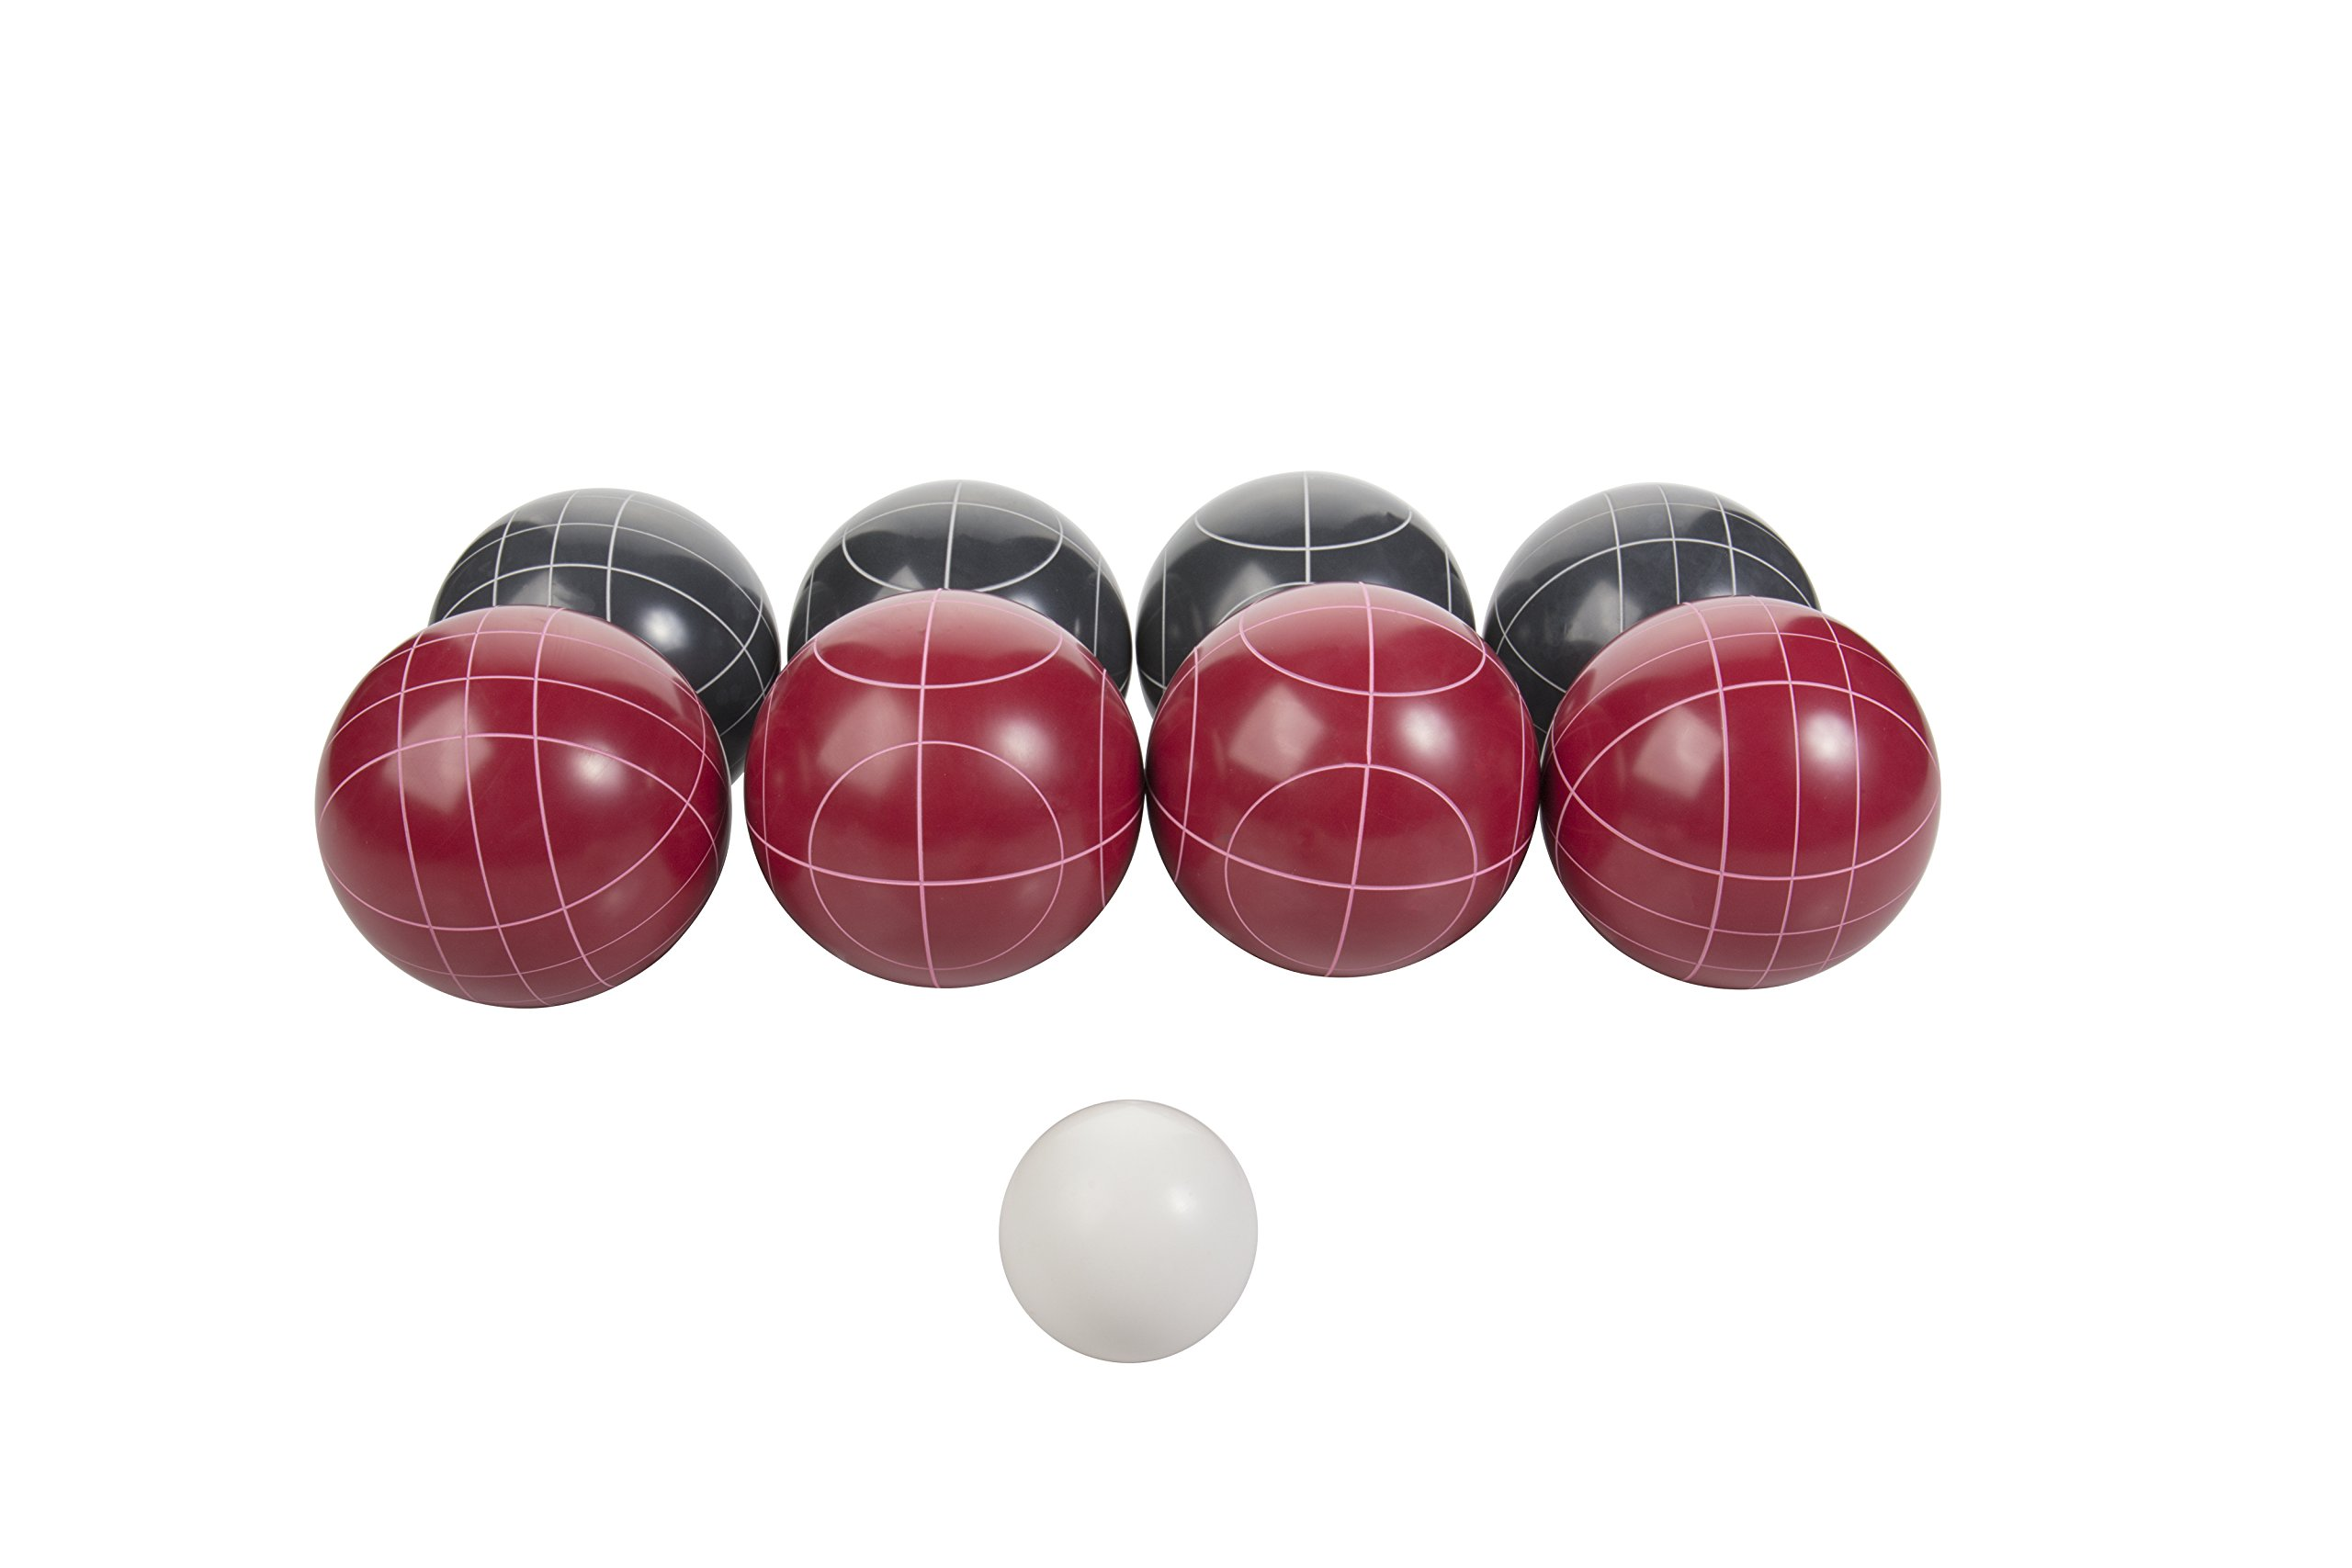 Triumph Competition 100mm Resin Bocce Ball Outdoor Game Set with Carrying Bag for Easy Storage by Triumph Sports